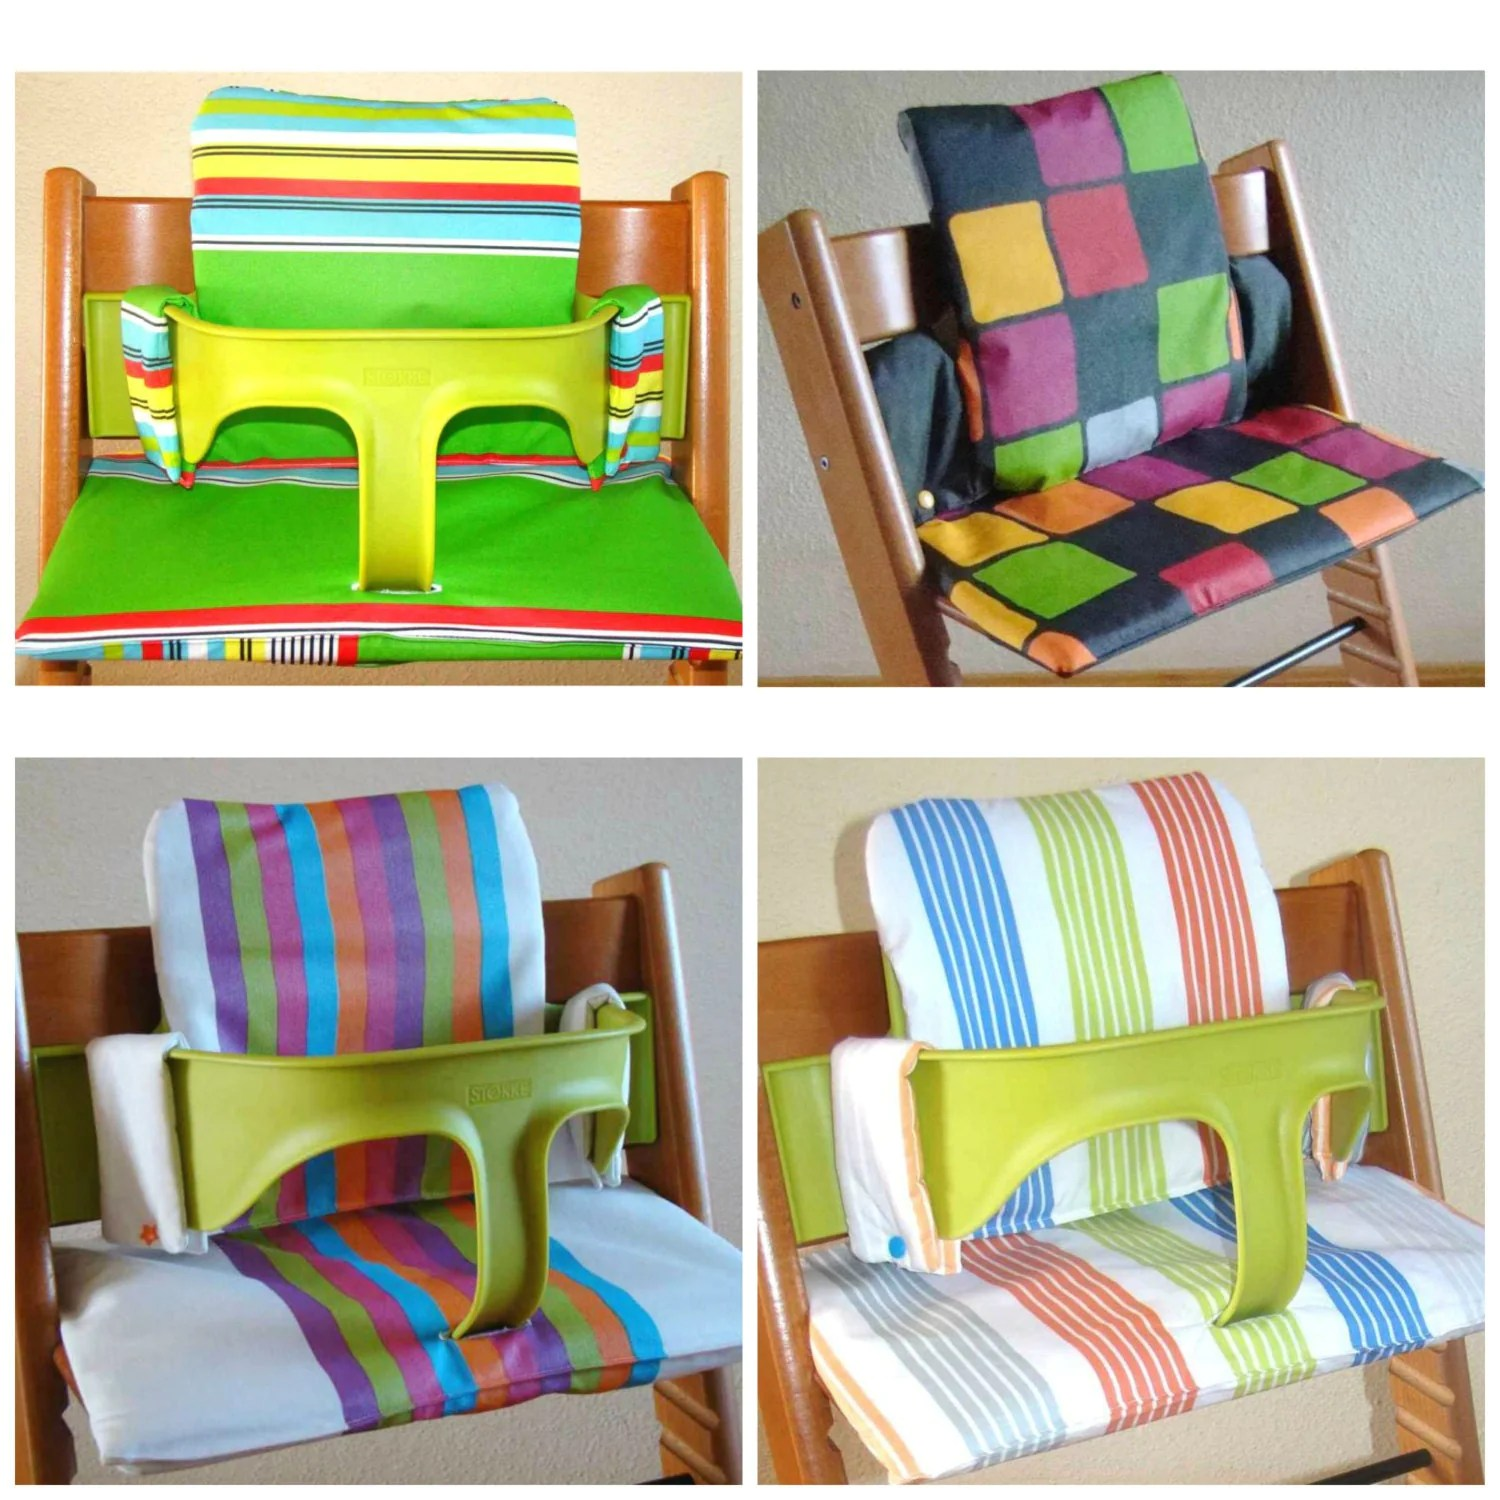 stokke high chair cushion sewing pattern back beach chairs australia tripp trapp set pdf